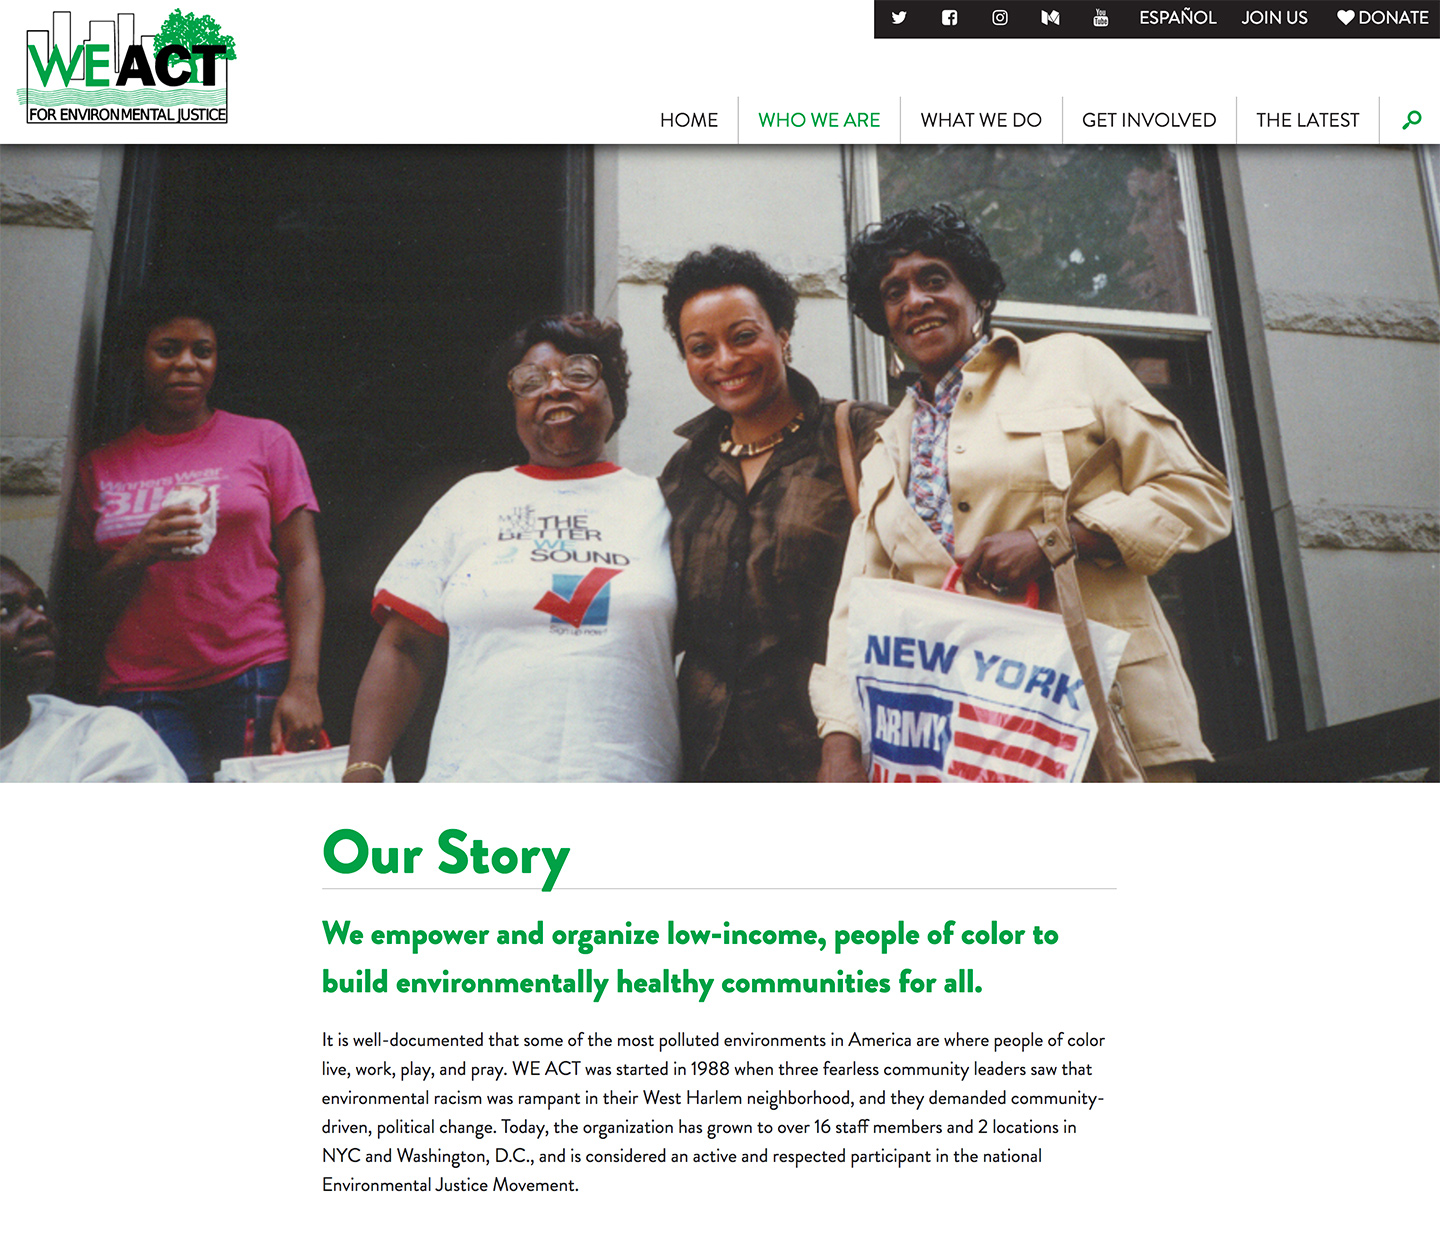 West Harlem Environmental Action, Inc.: WEACT Stories